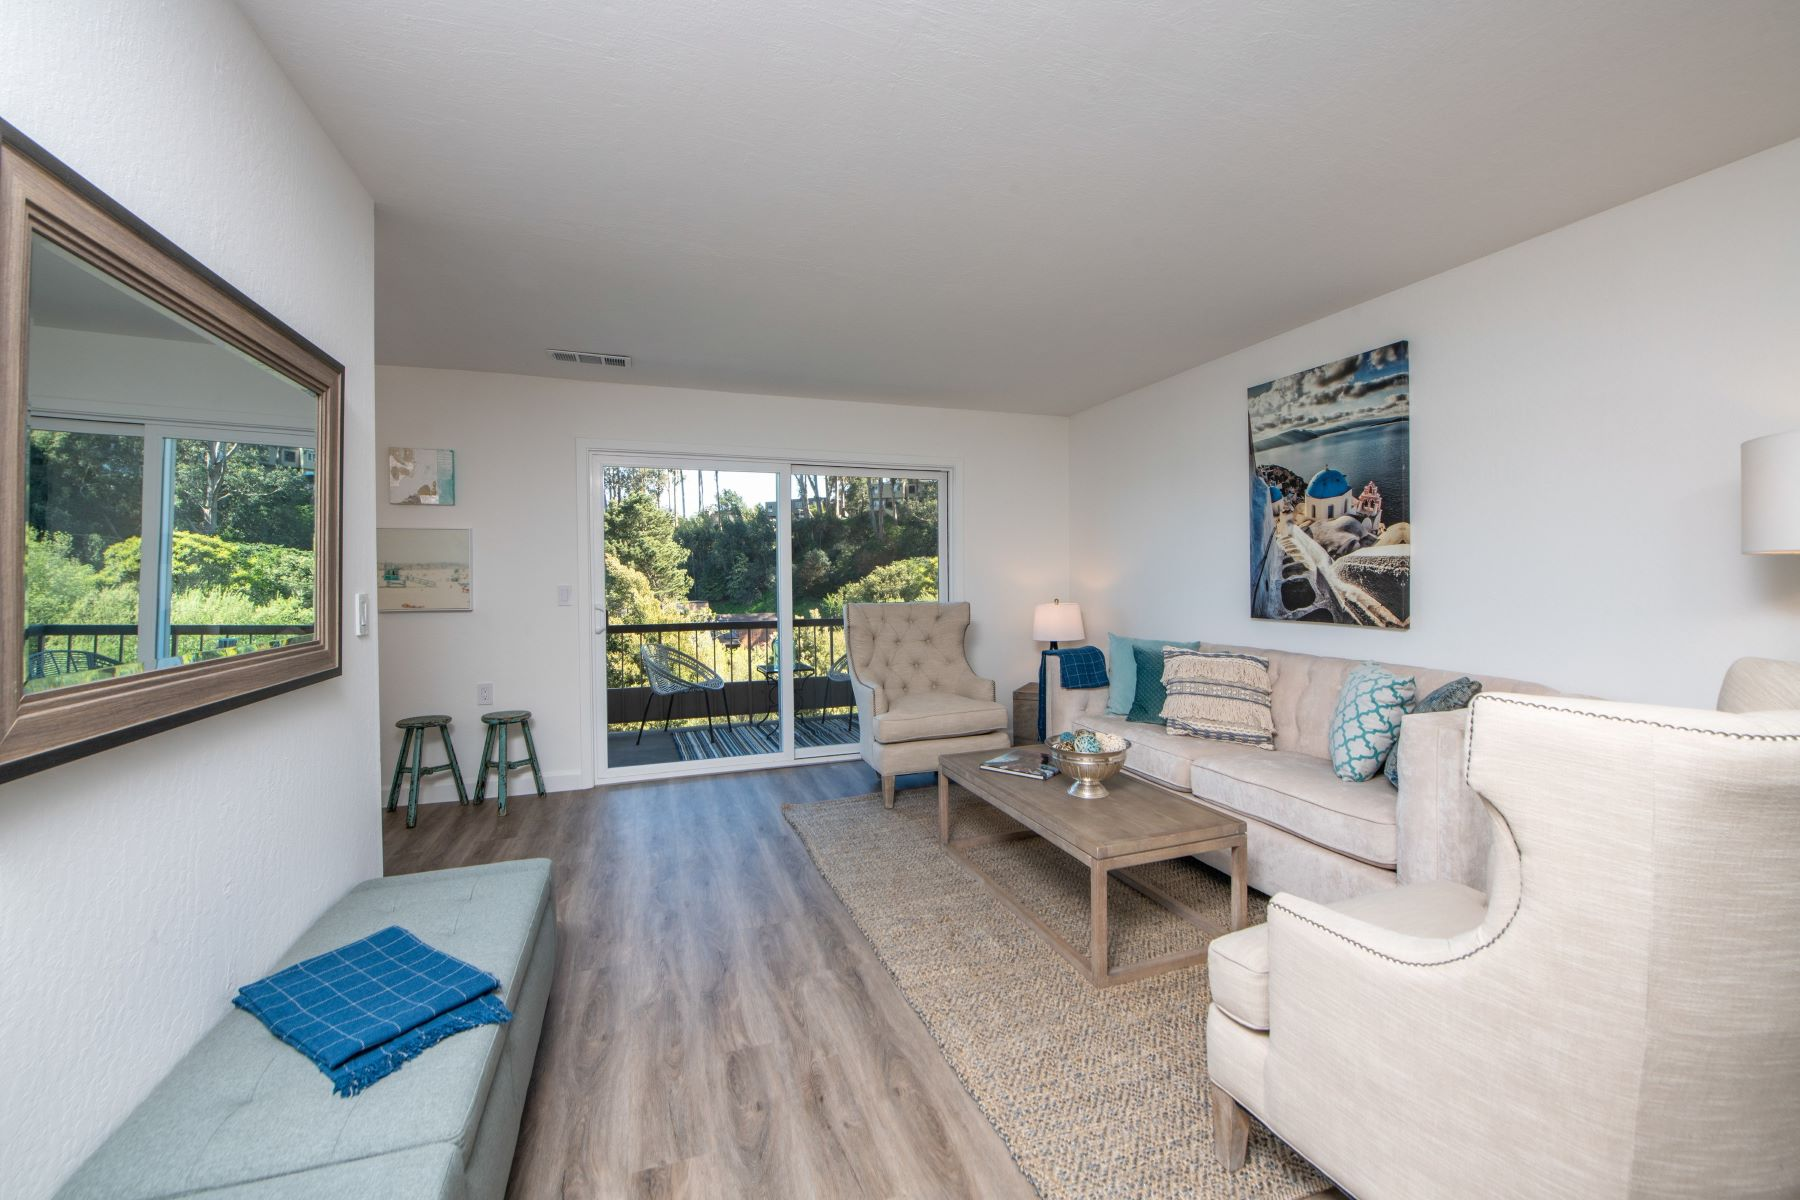 Single Family Homes for Active at Beautifully Updated and Spacious 31 Anchorage Rd Sausalito, California 94965 United States